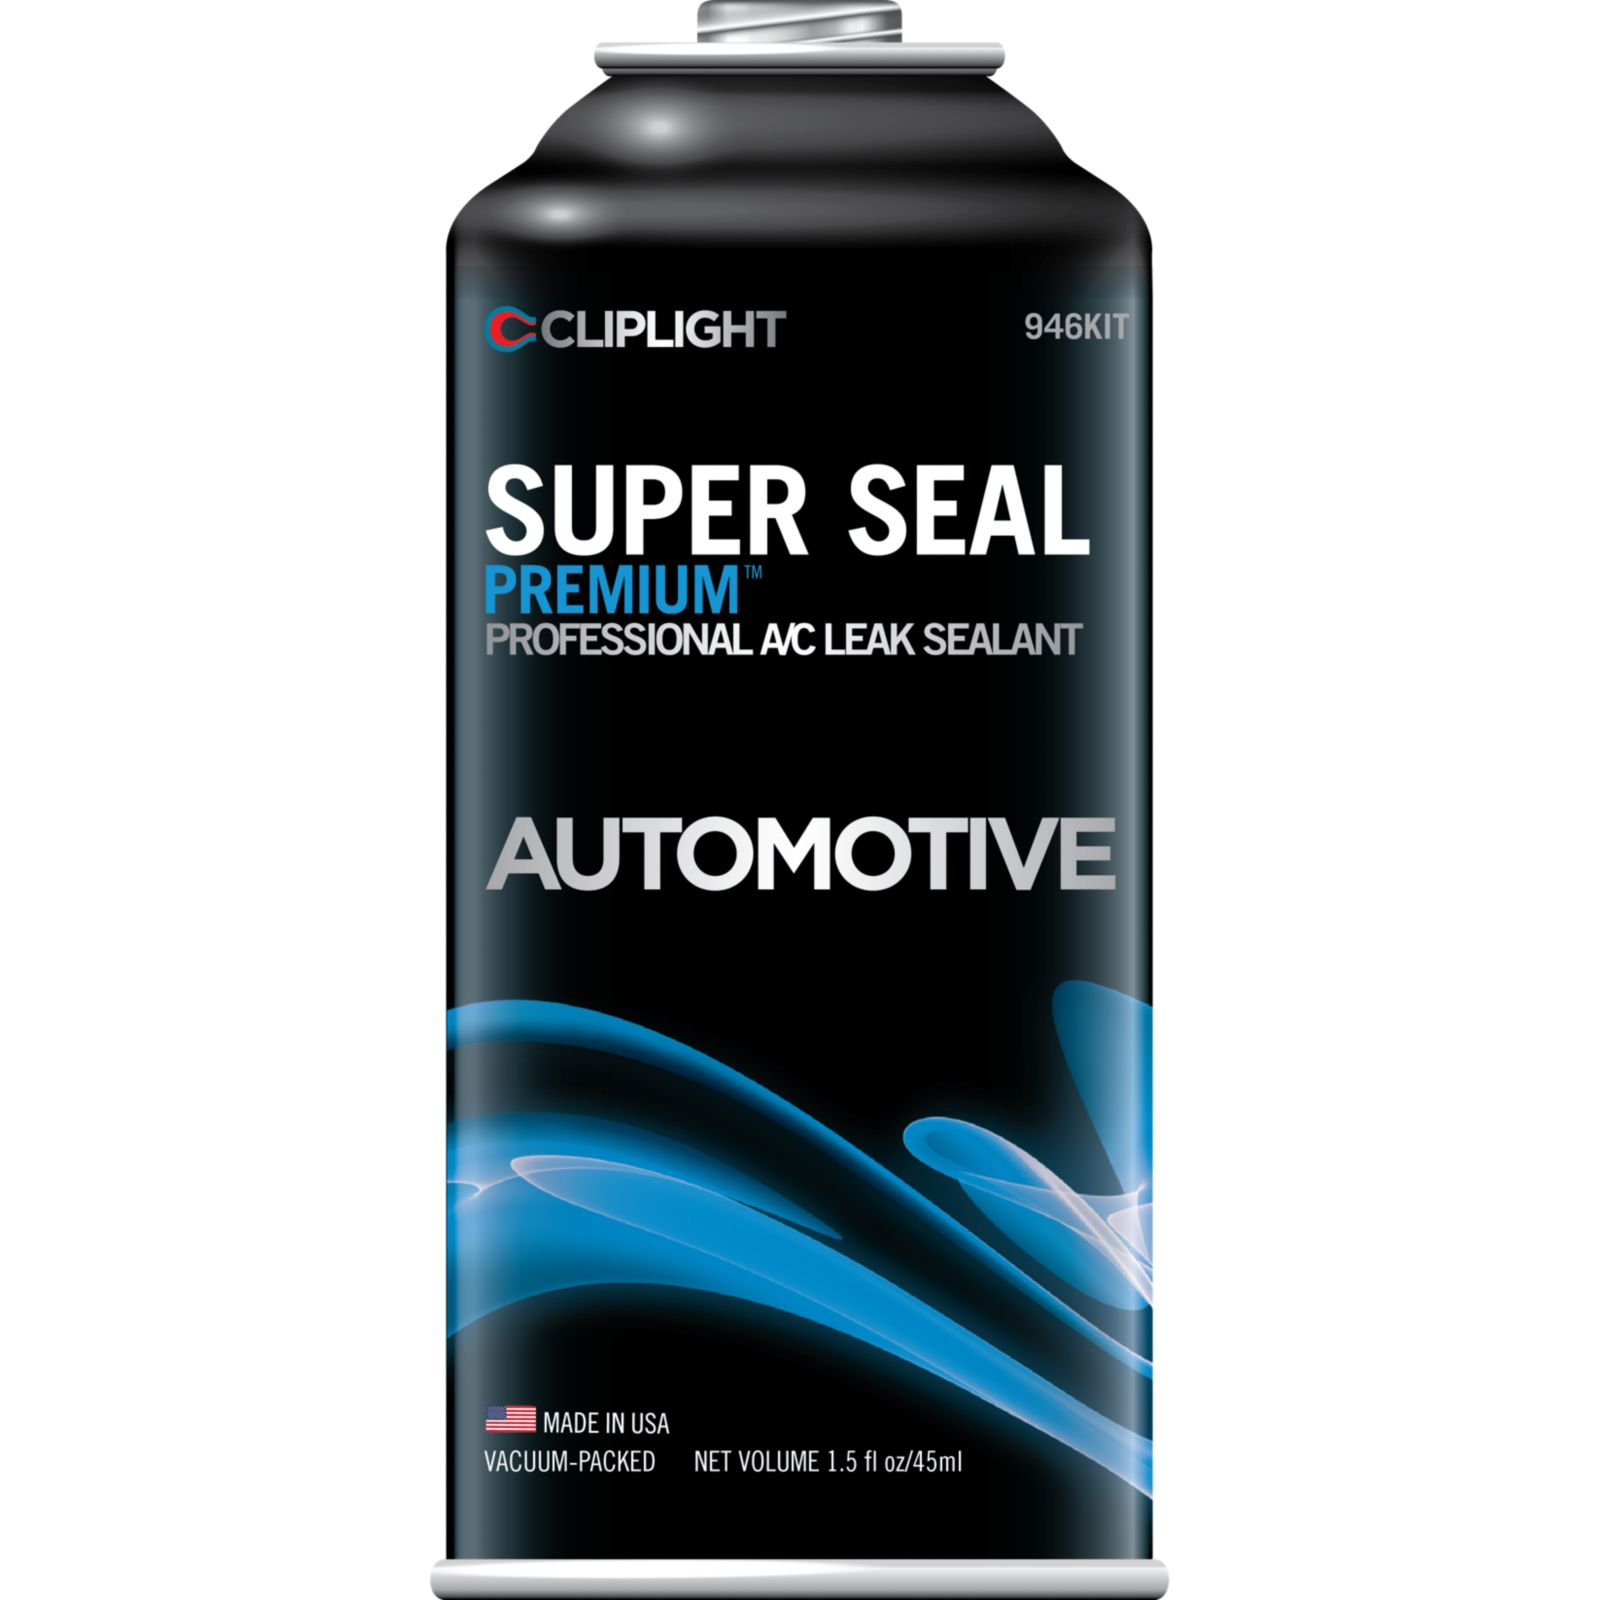 Super Seal D-946KIT -  The Classic Auto A/C Sealant.